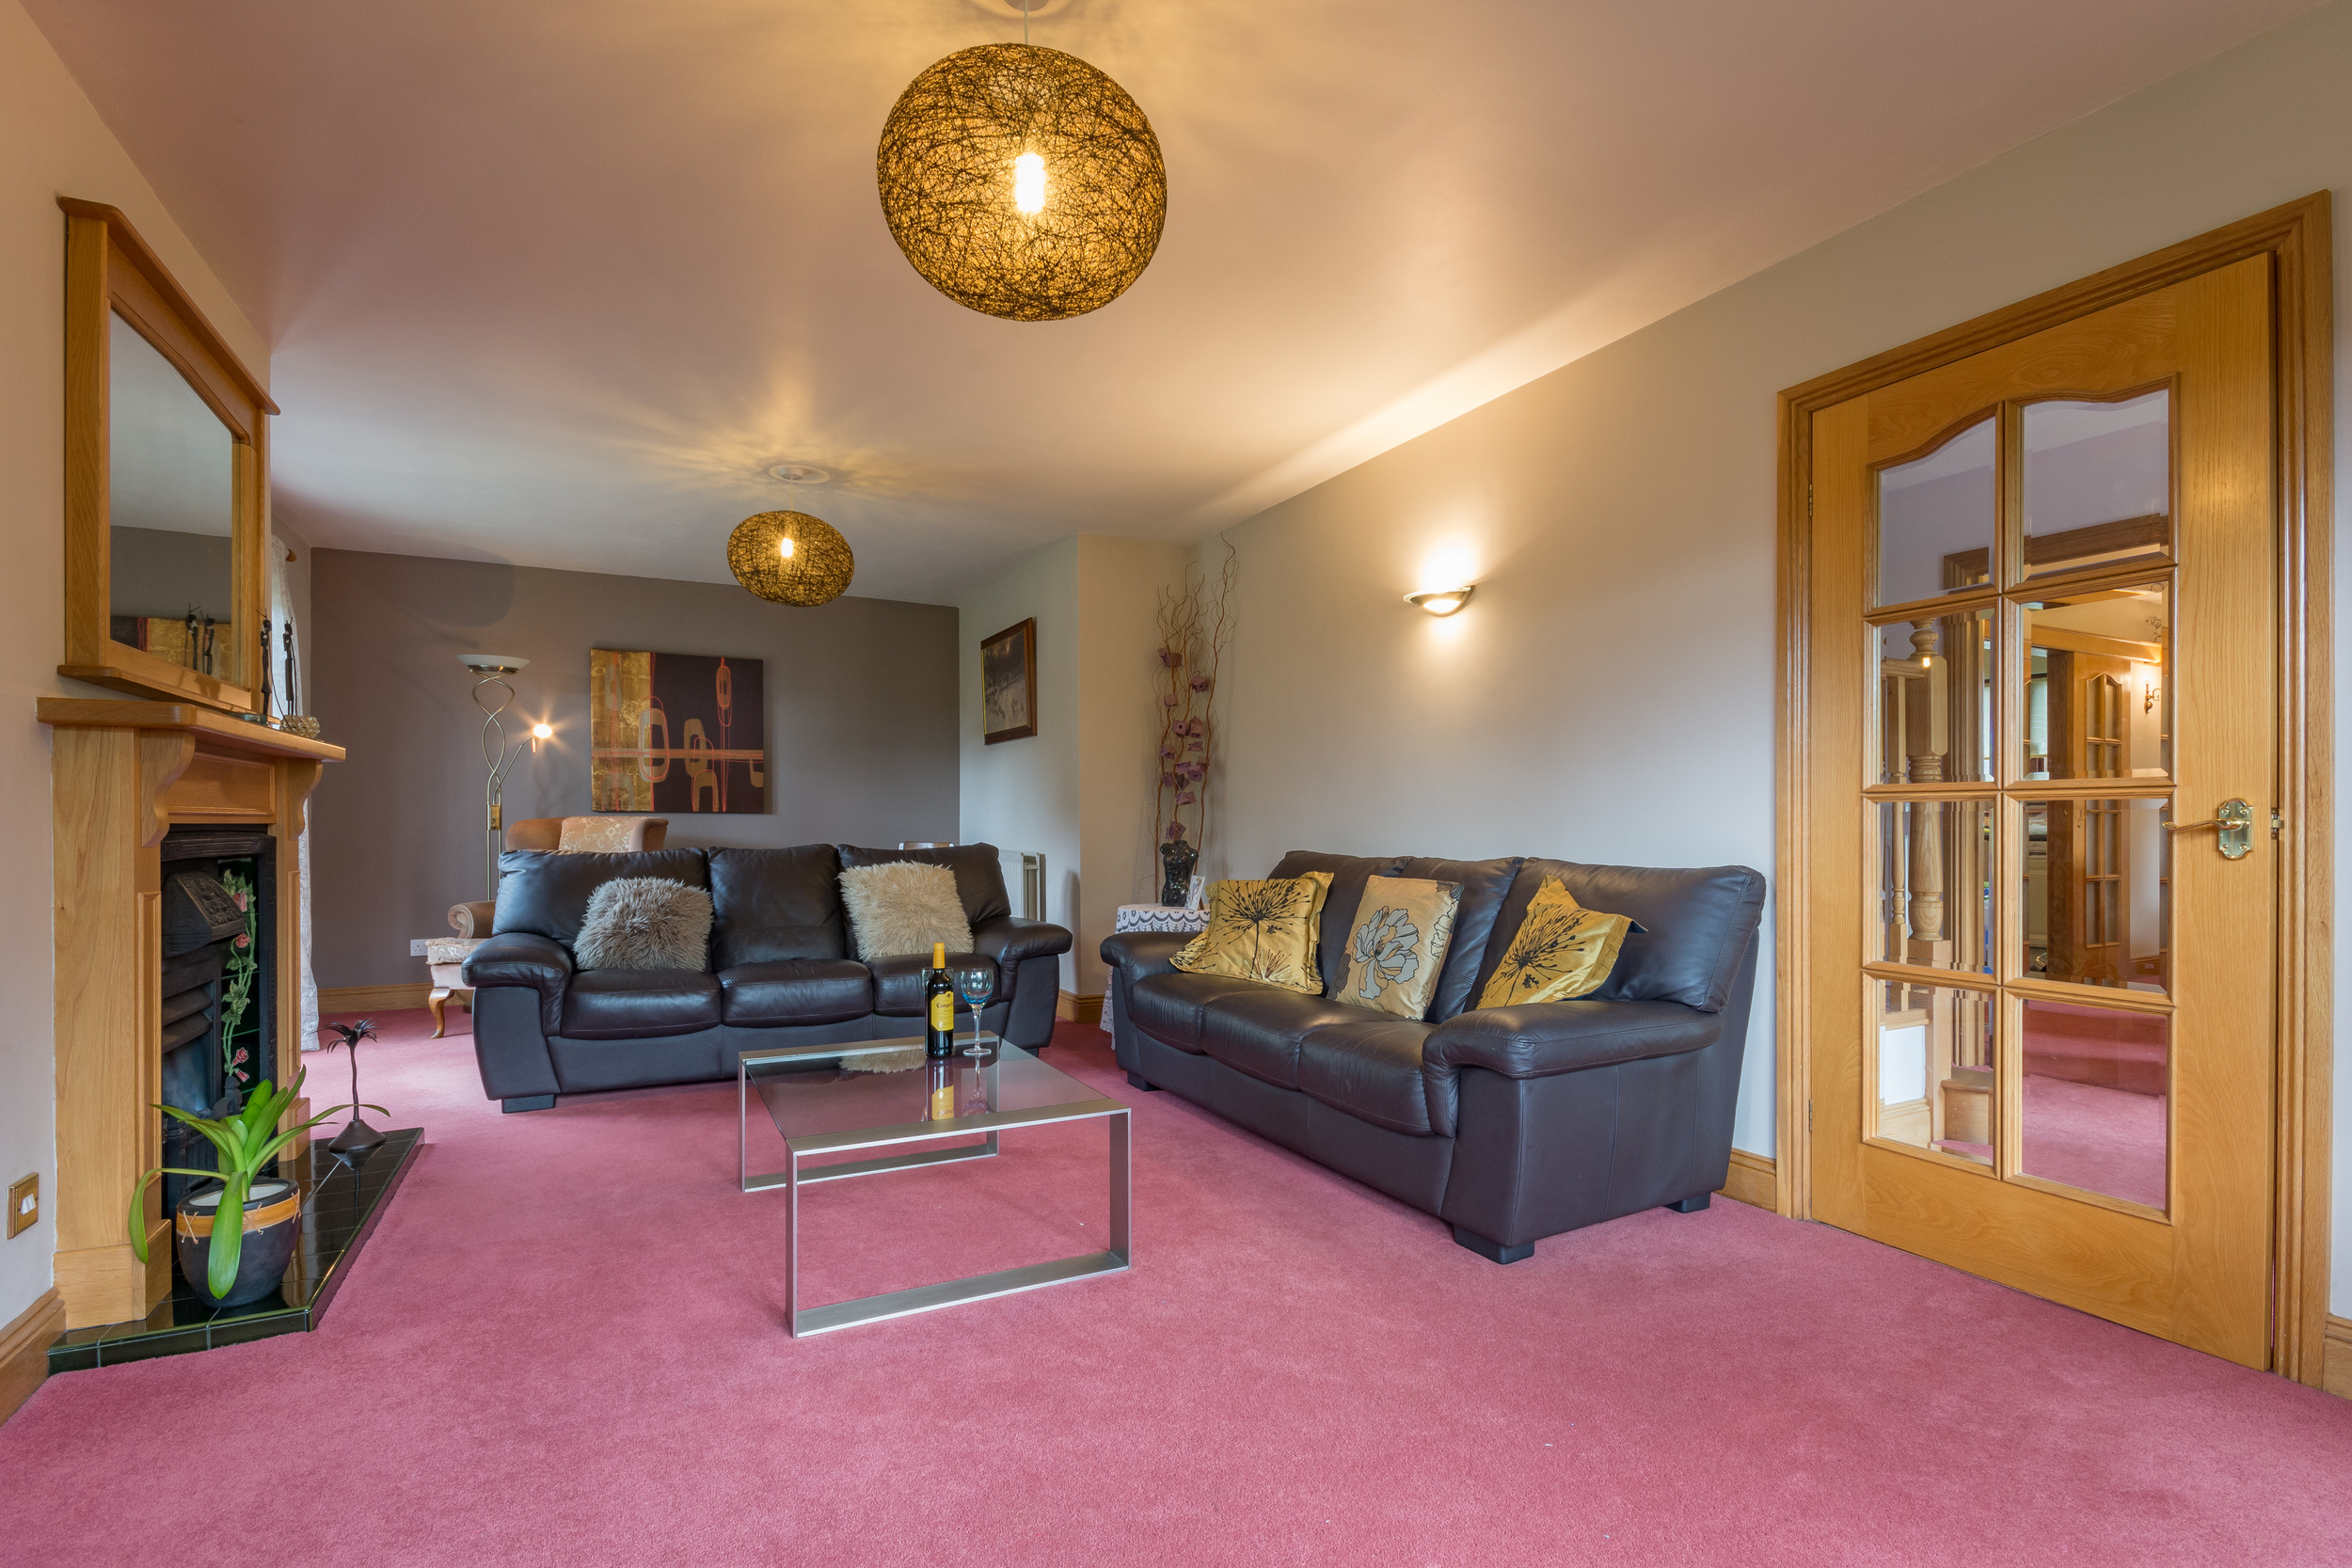 Sitting Room 2 - Beech Nook Thornthwaite, Keswick Holidays Self Catering.jpg